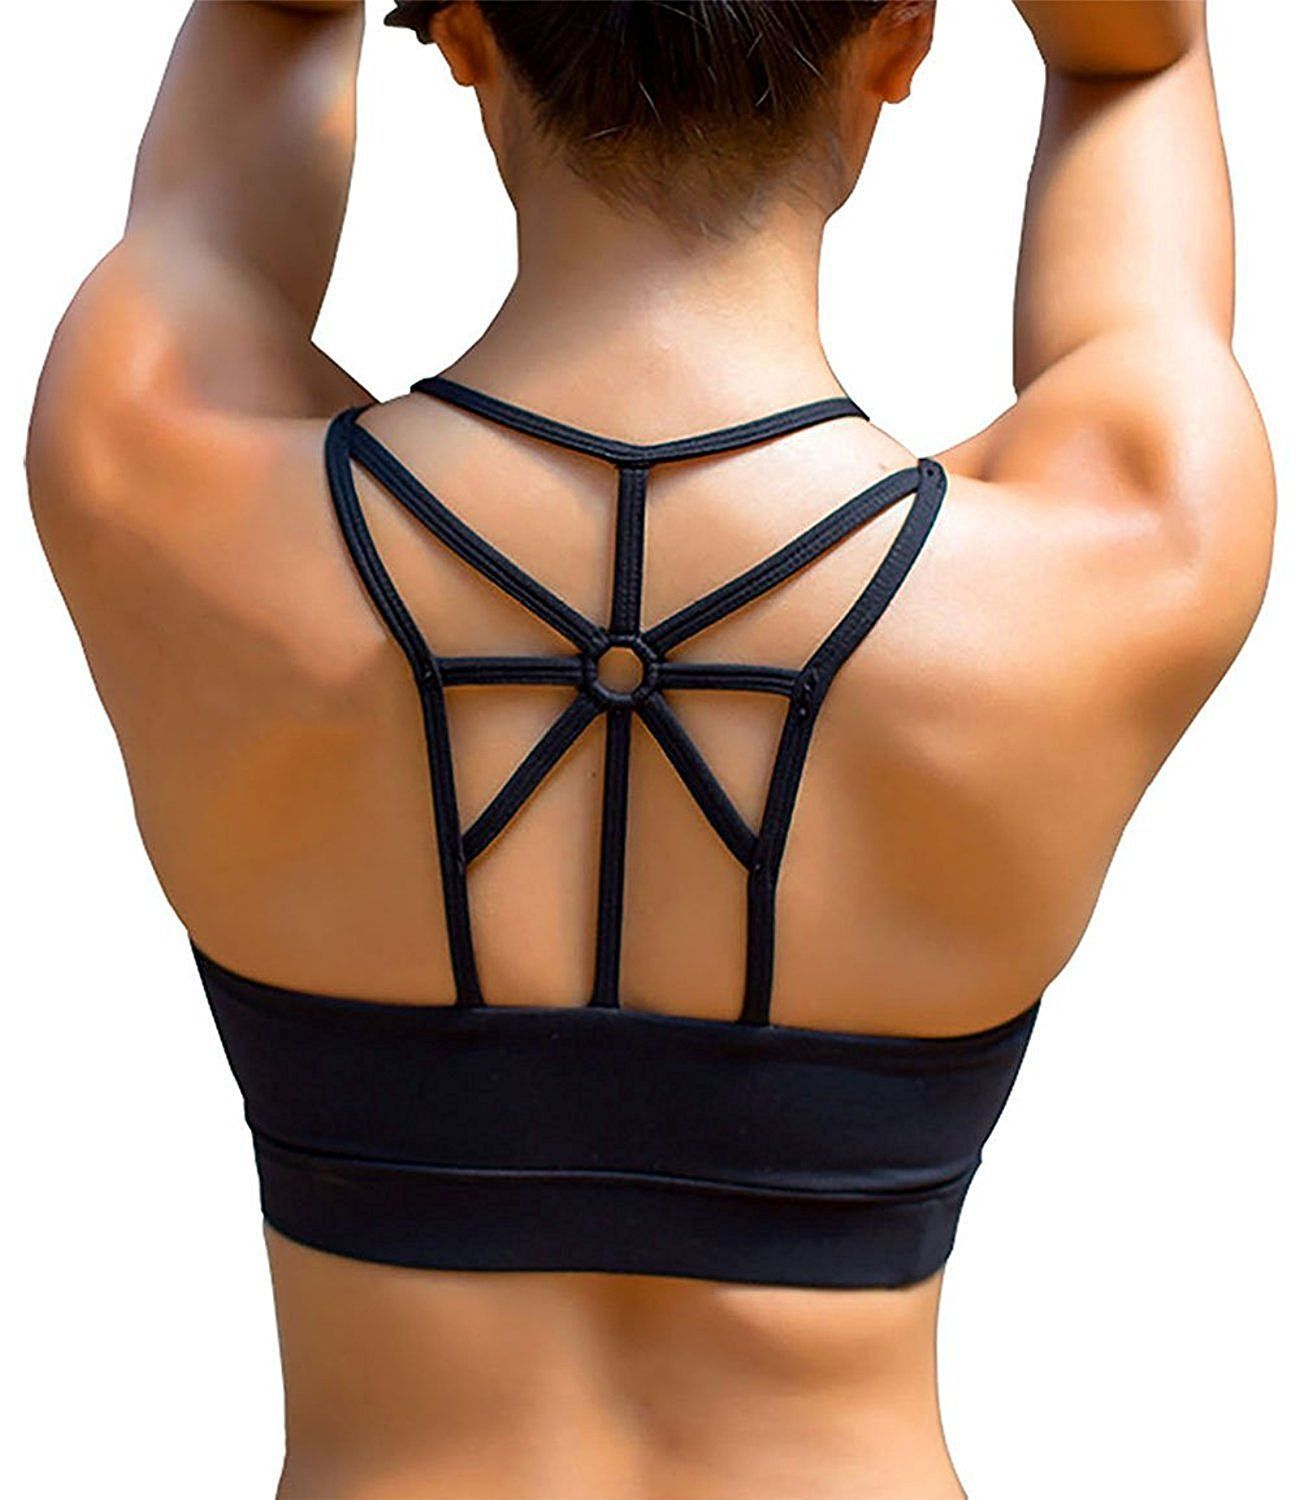 3e90d9ac78c7a YIANNA Womens Sports Bra Padded Elastic Breathable Wireless High Impact  Yoga Bra Top  Amazon.